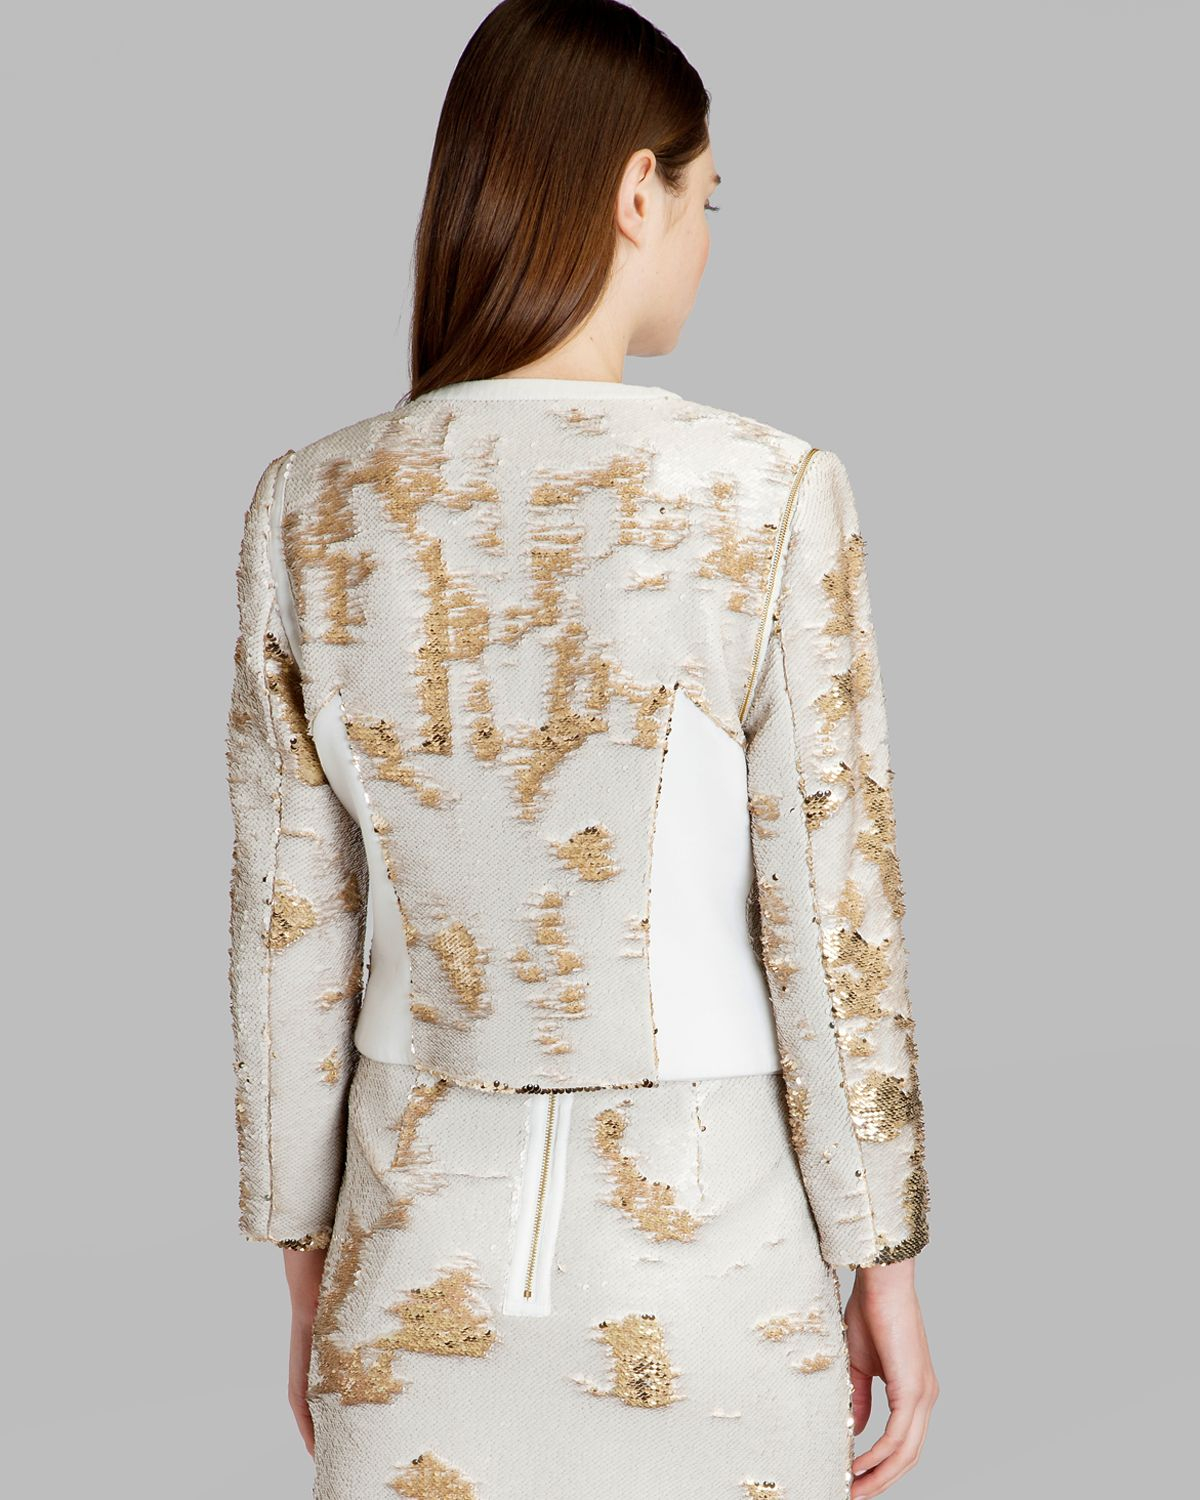 472d970ac9b8a6 Lyst - Ted Baker Jacket - Blubele Sequins in Metallic